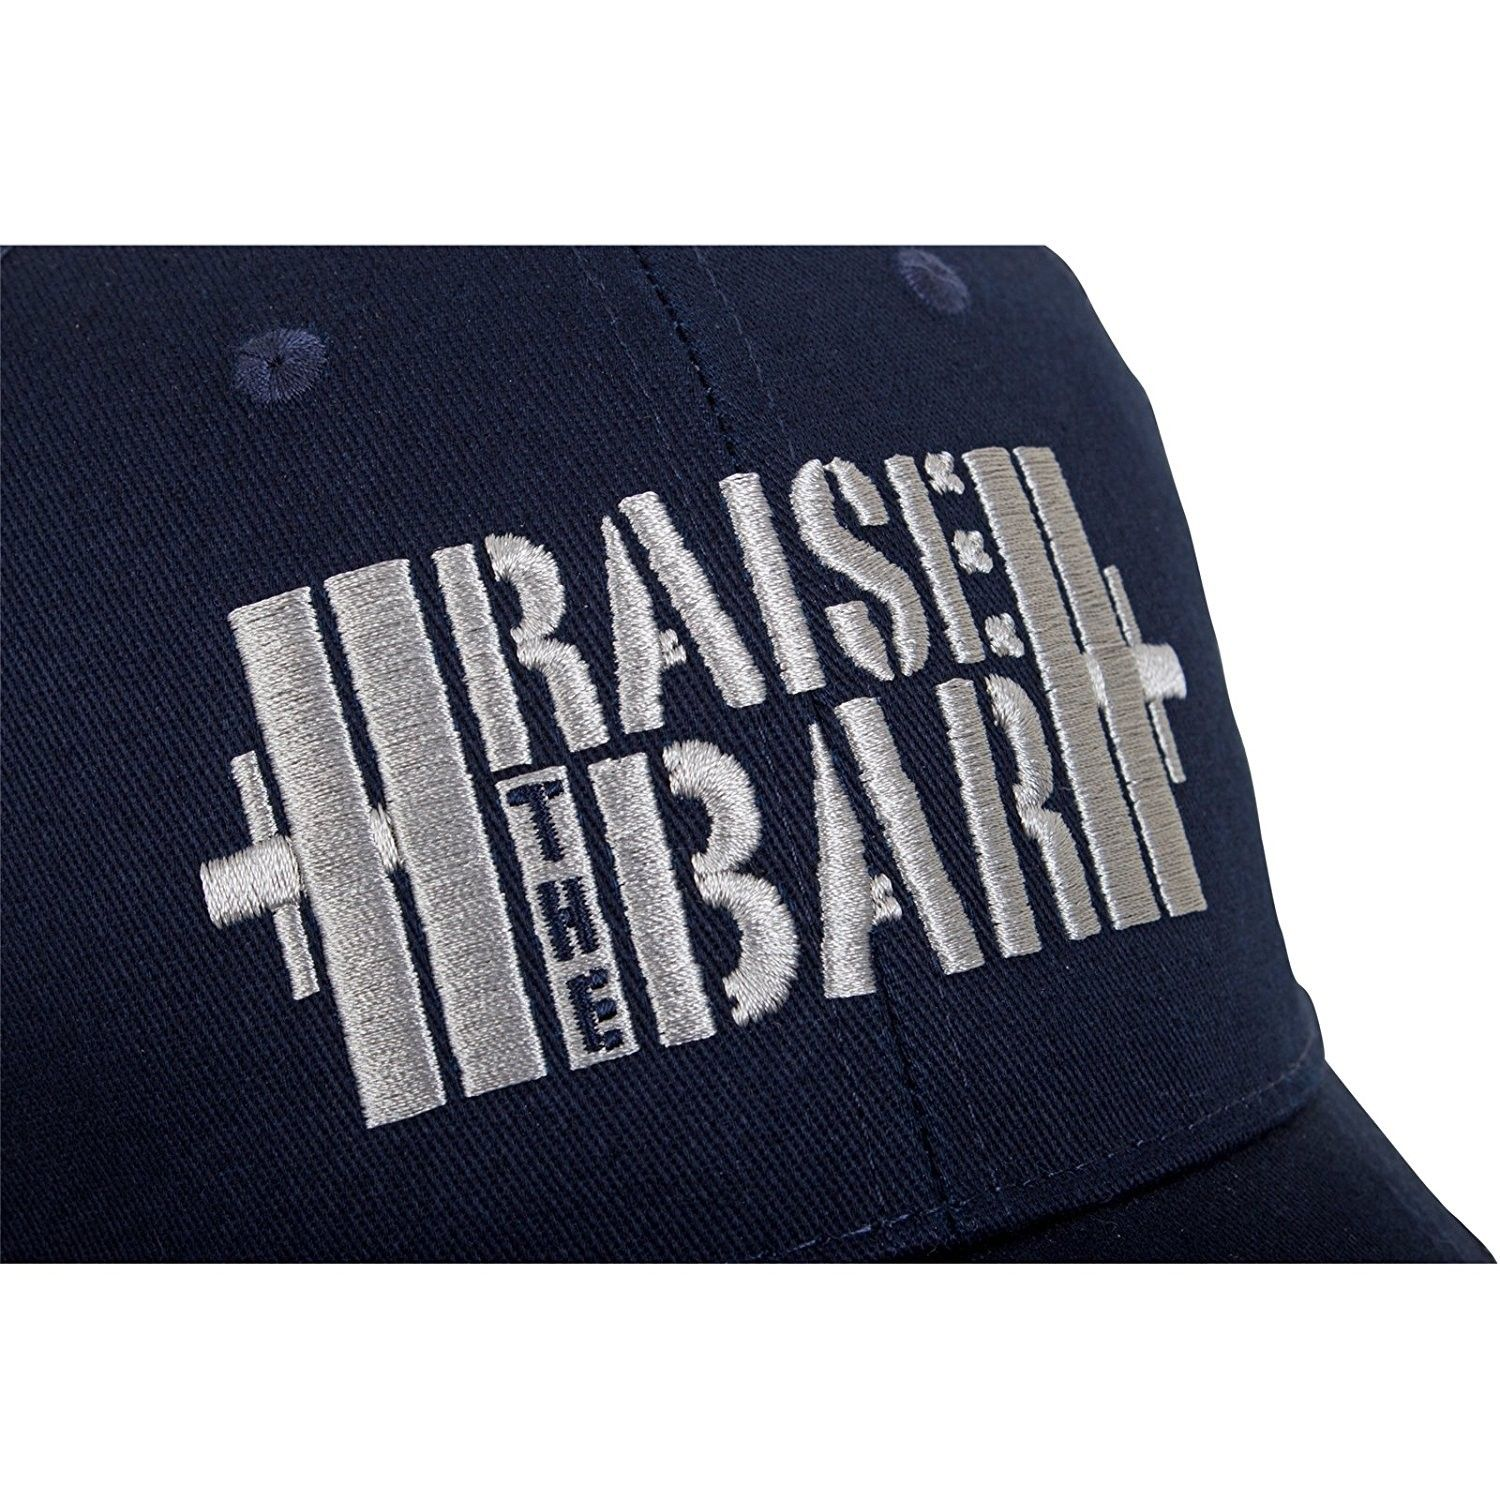 4711939f38227 Raise the Bar Barbell Weightlifting - Blue - Curved Bill Snapback ...